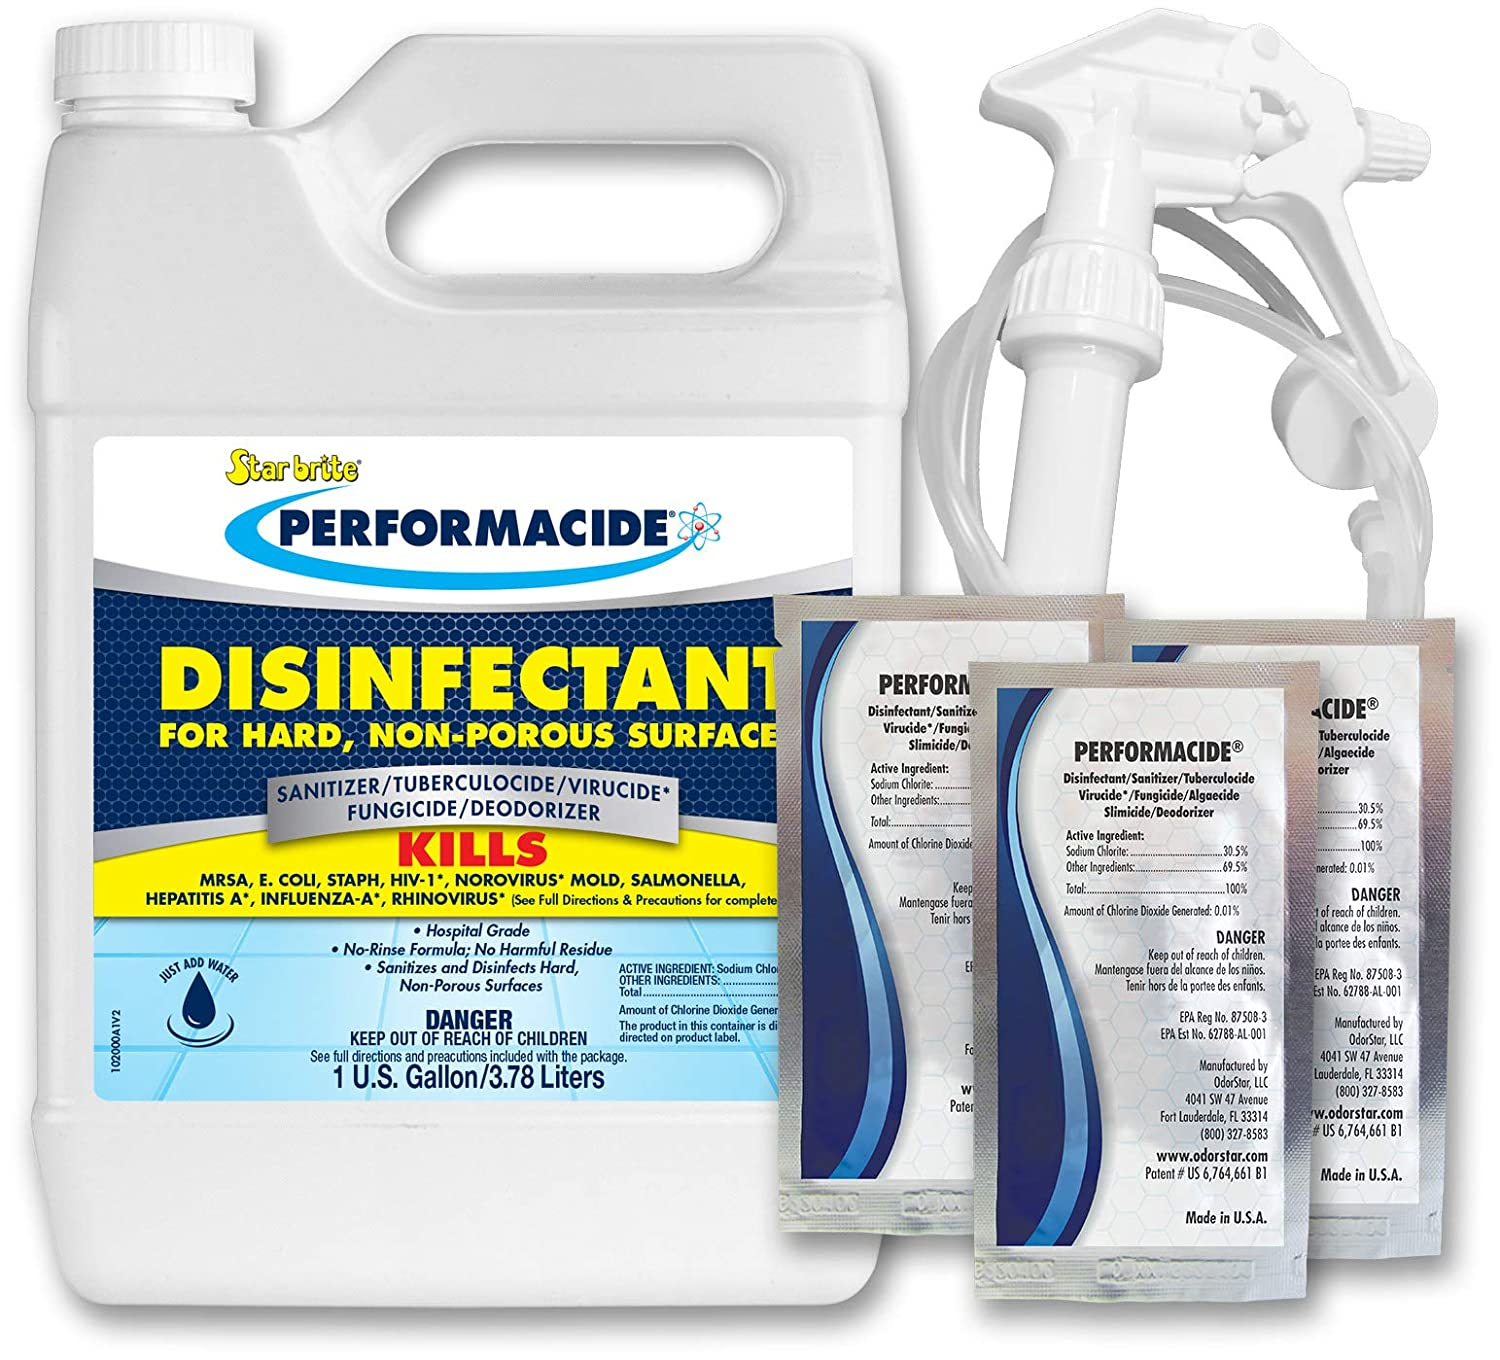 Performacide Hospital & Home Disinfectant- forInfluenza-A, Rhinovirus,MRSA, Staph - Just Add Water - No Rinse, No Wipe, No Residue - EPA Registered - Makes 3 Gallons